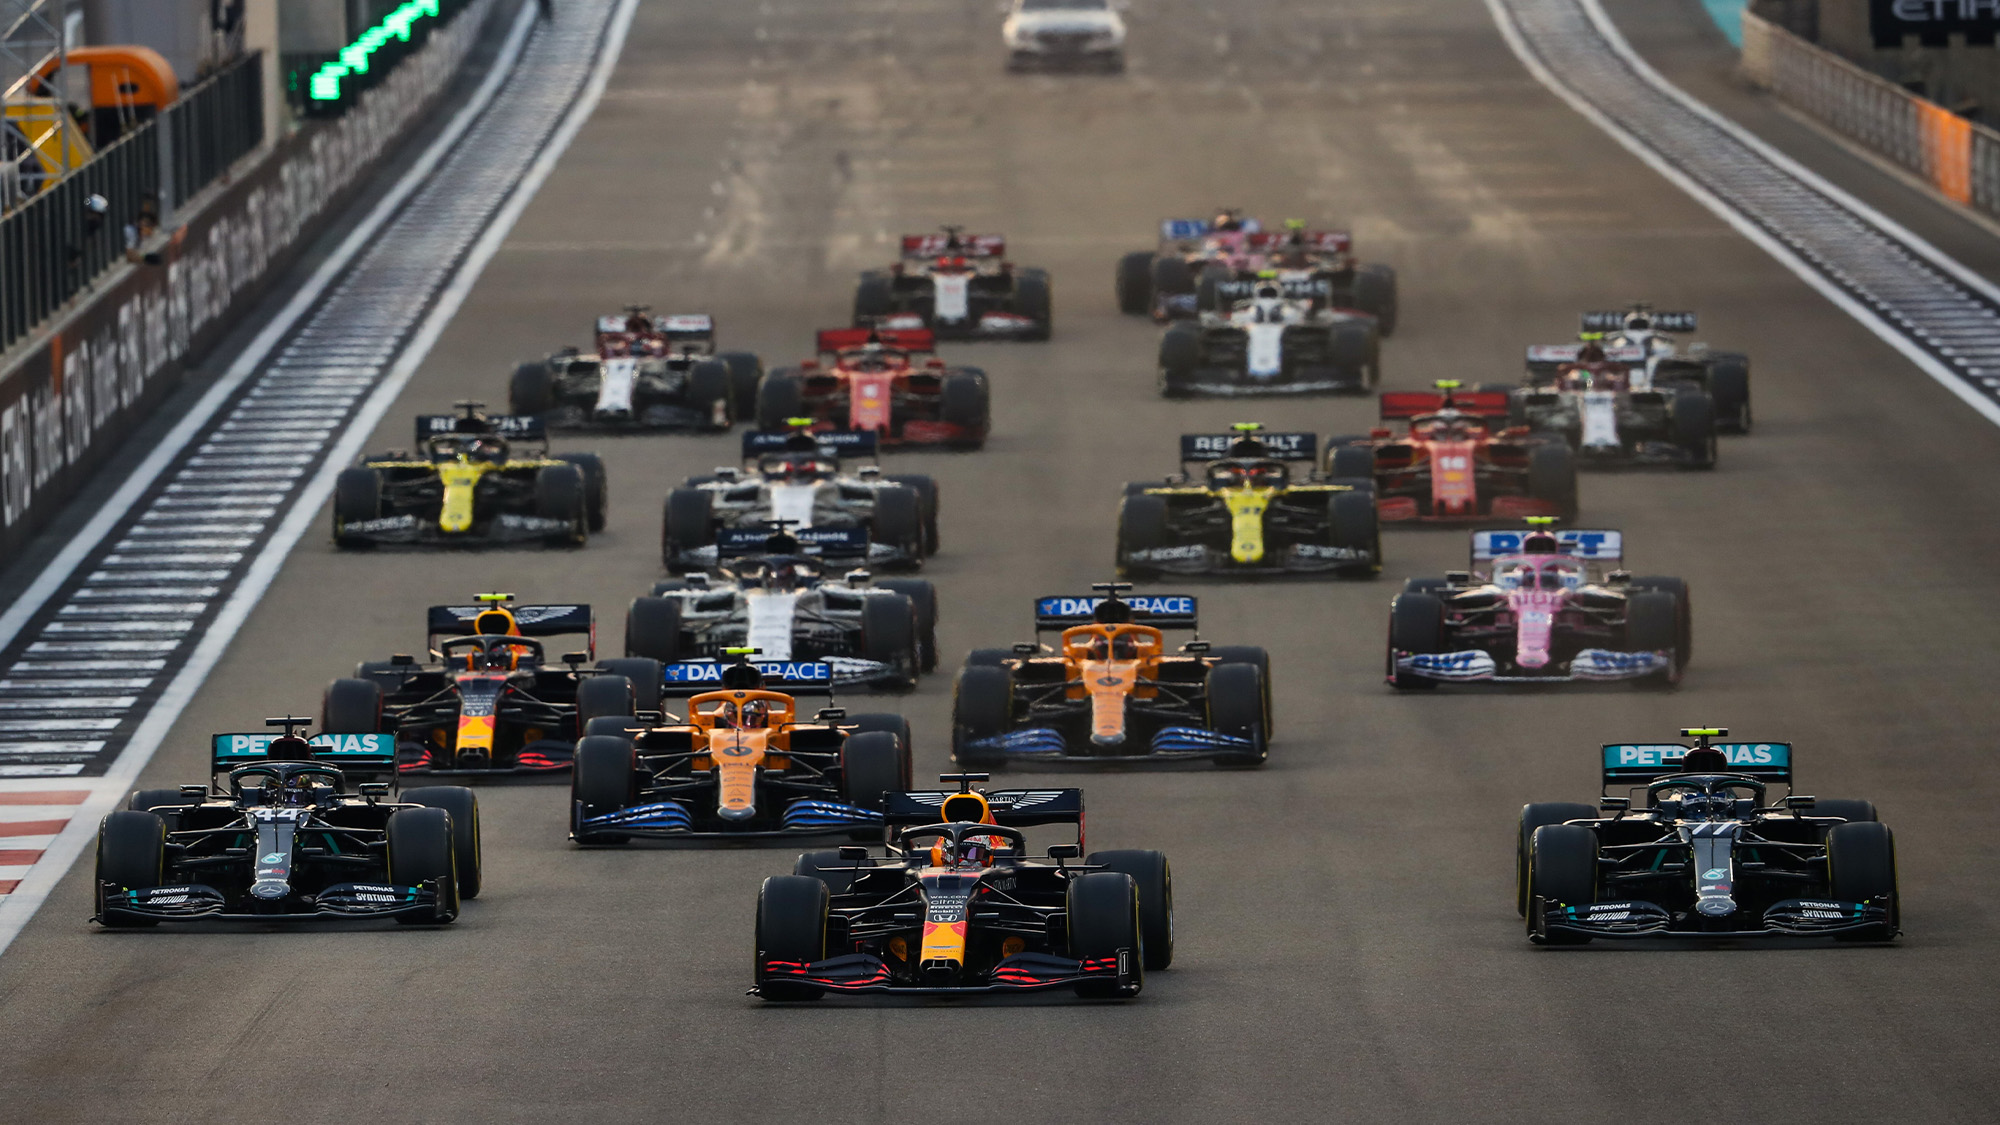 Max Verstappen leads at the start of the 2020 Abu Dhabi Grand Prix